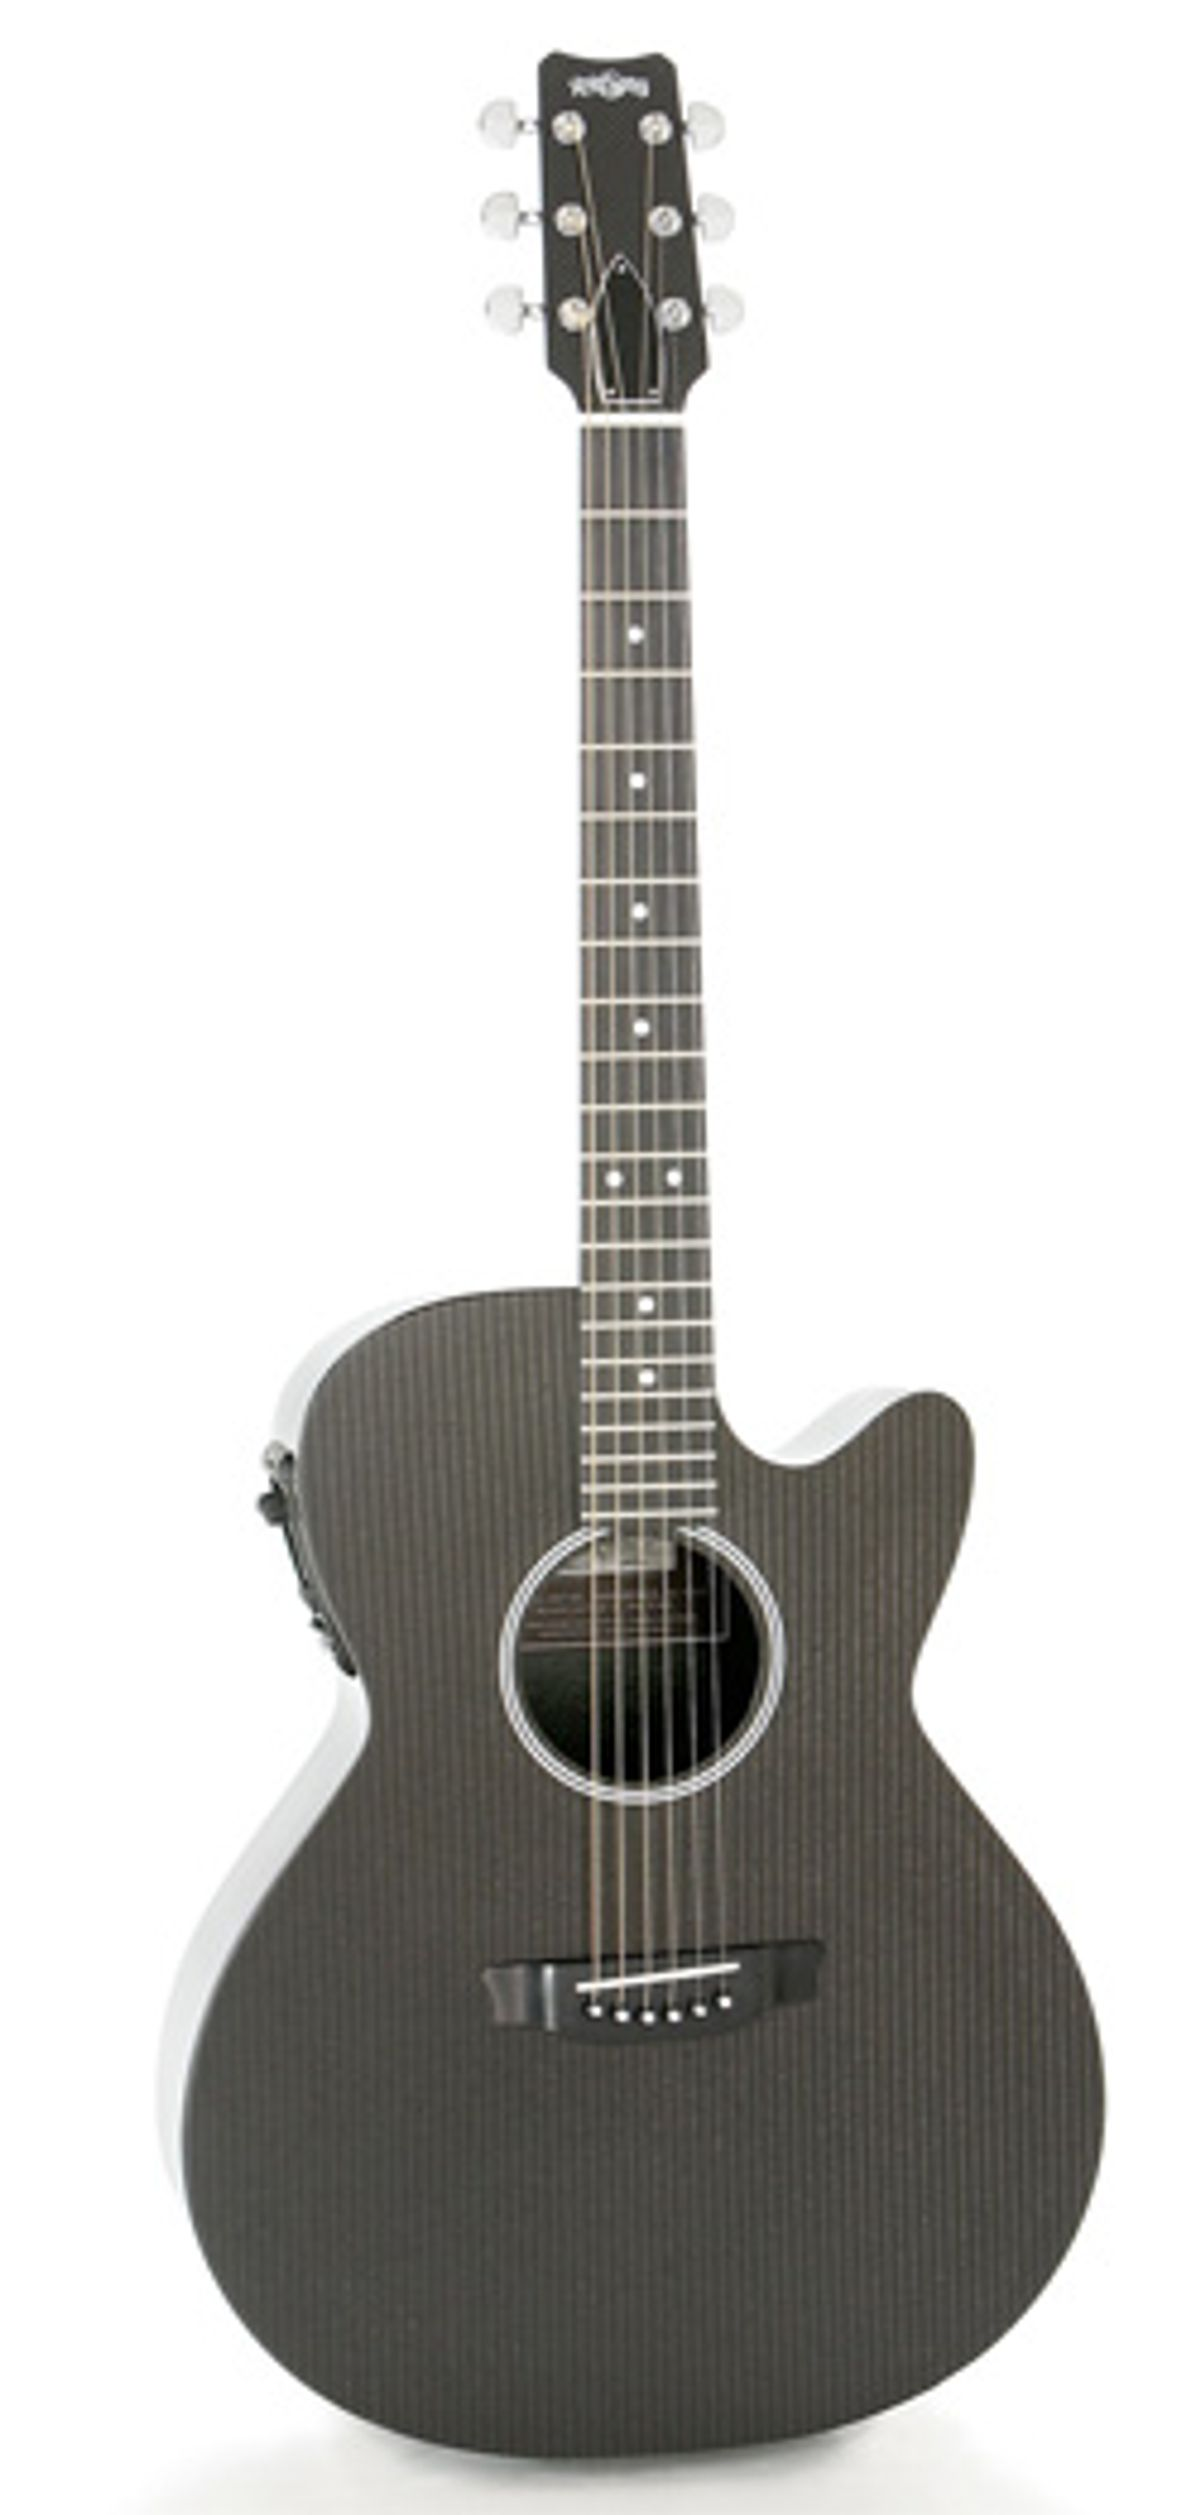 Rainsong Introduces Hybrid Series Line of Composite Guitars